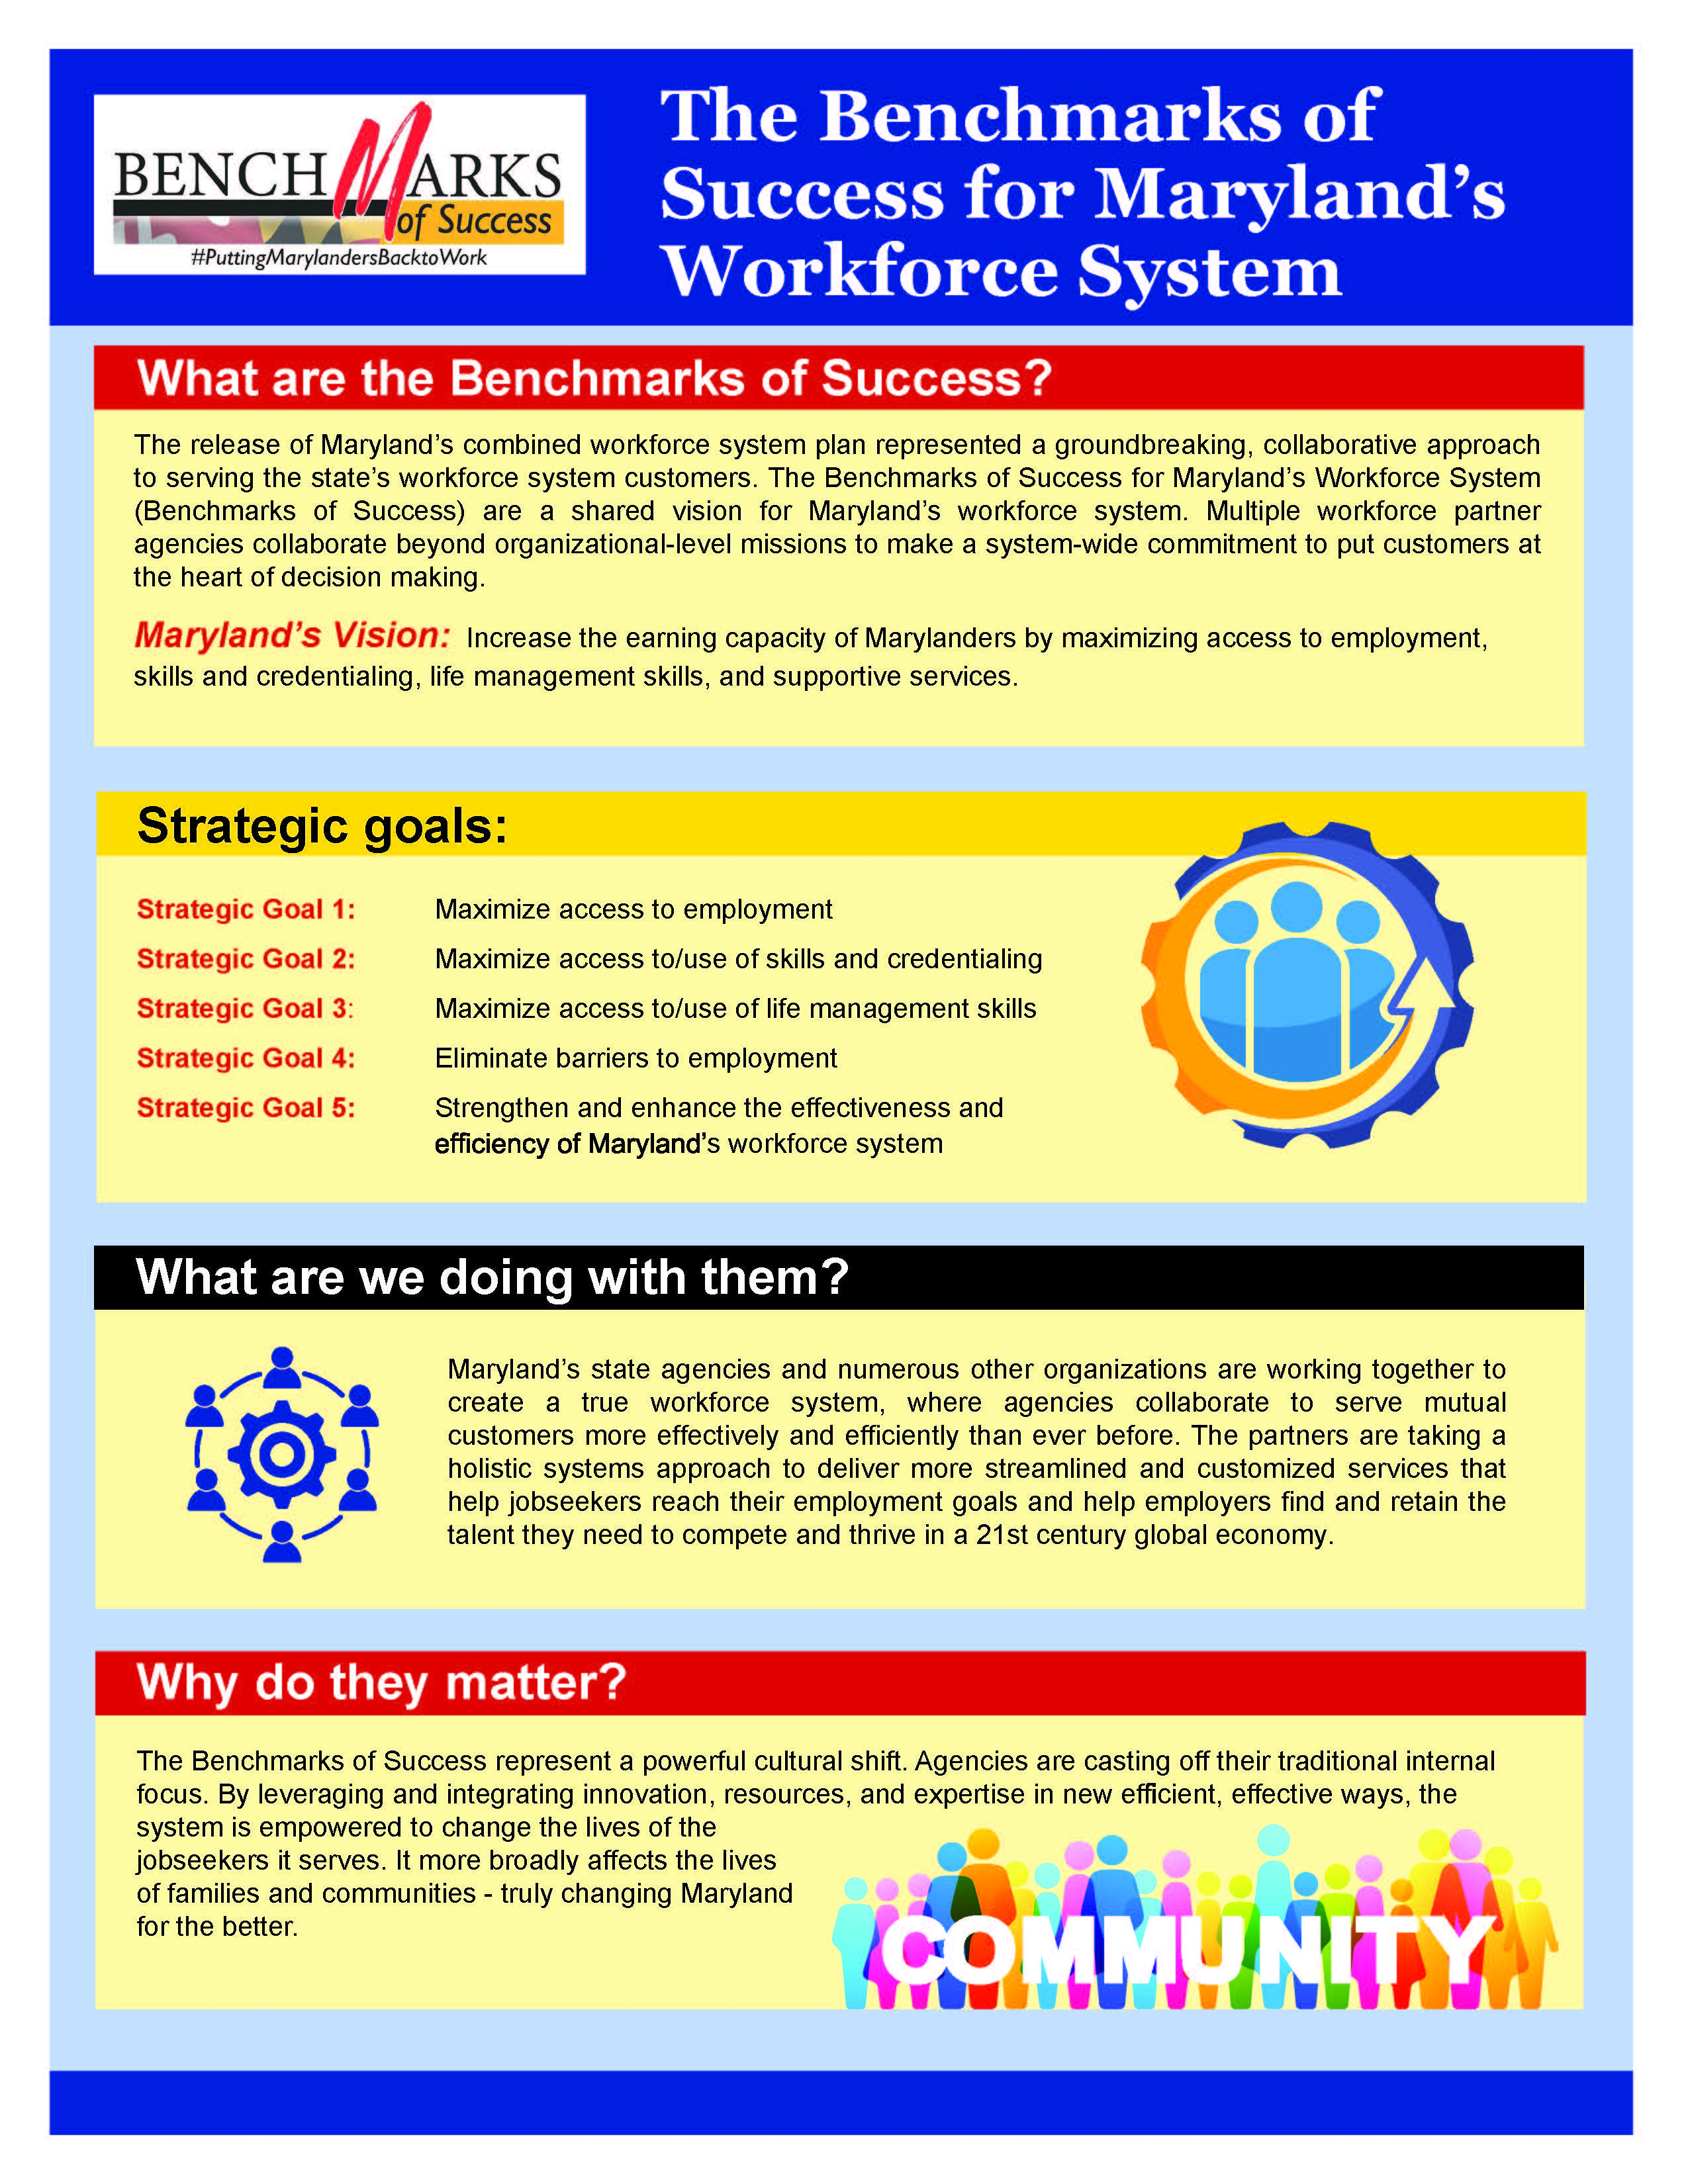 Maryland Workforce Innovation and Opportunity Act (WIOA) Benchmarks flyer